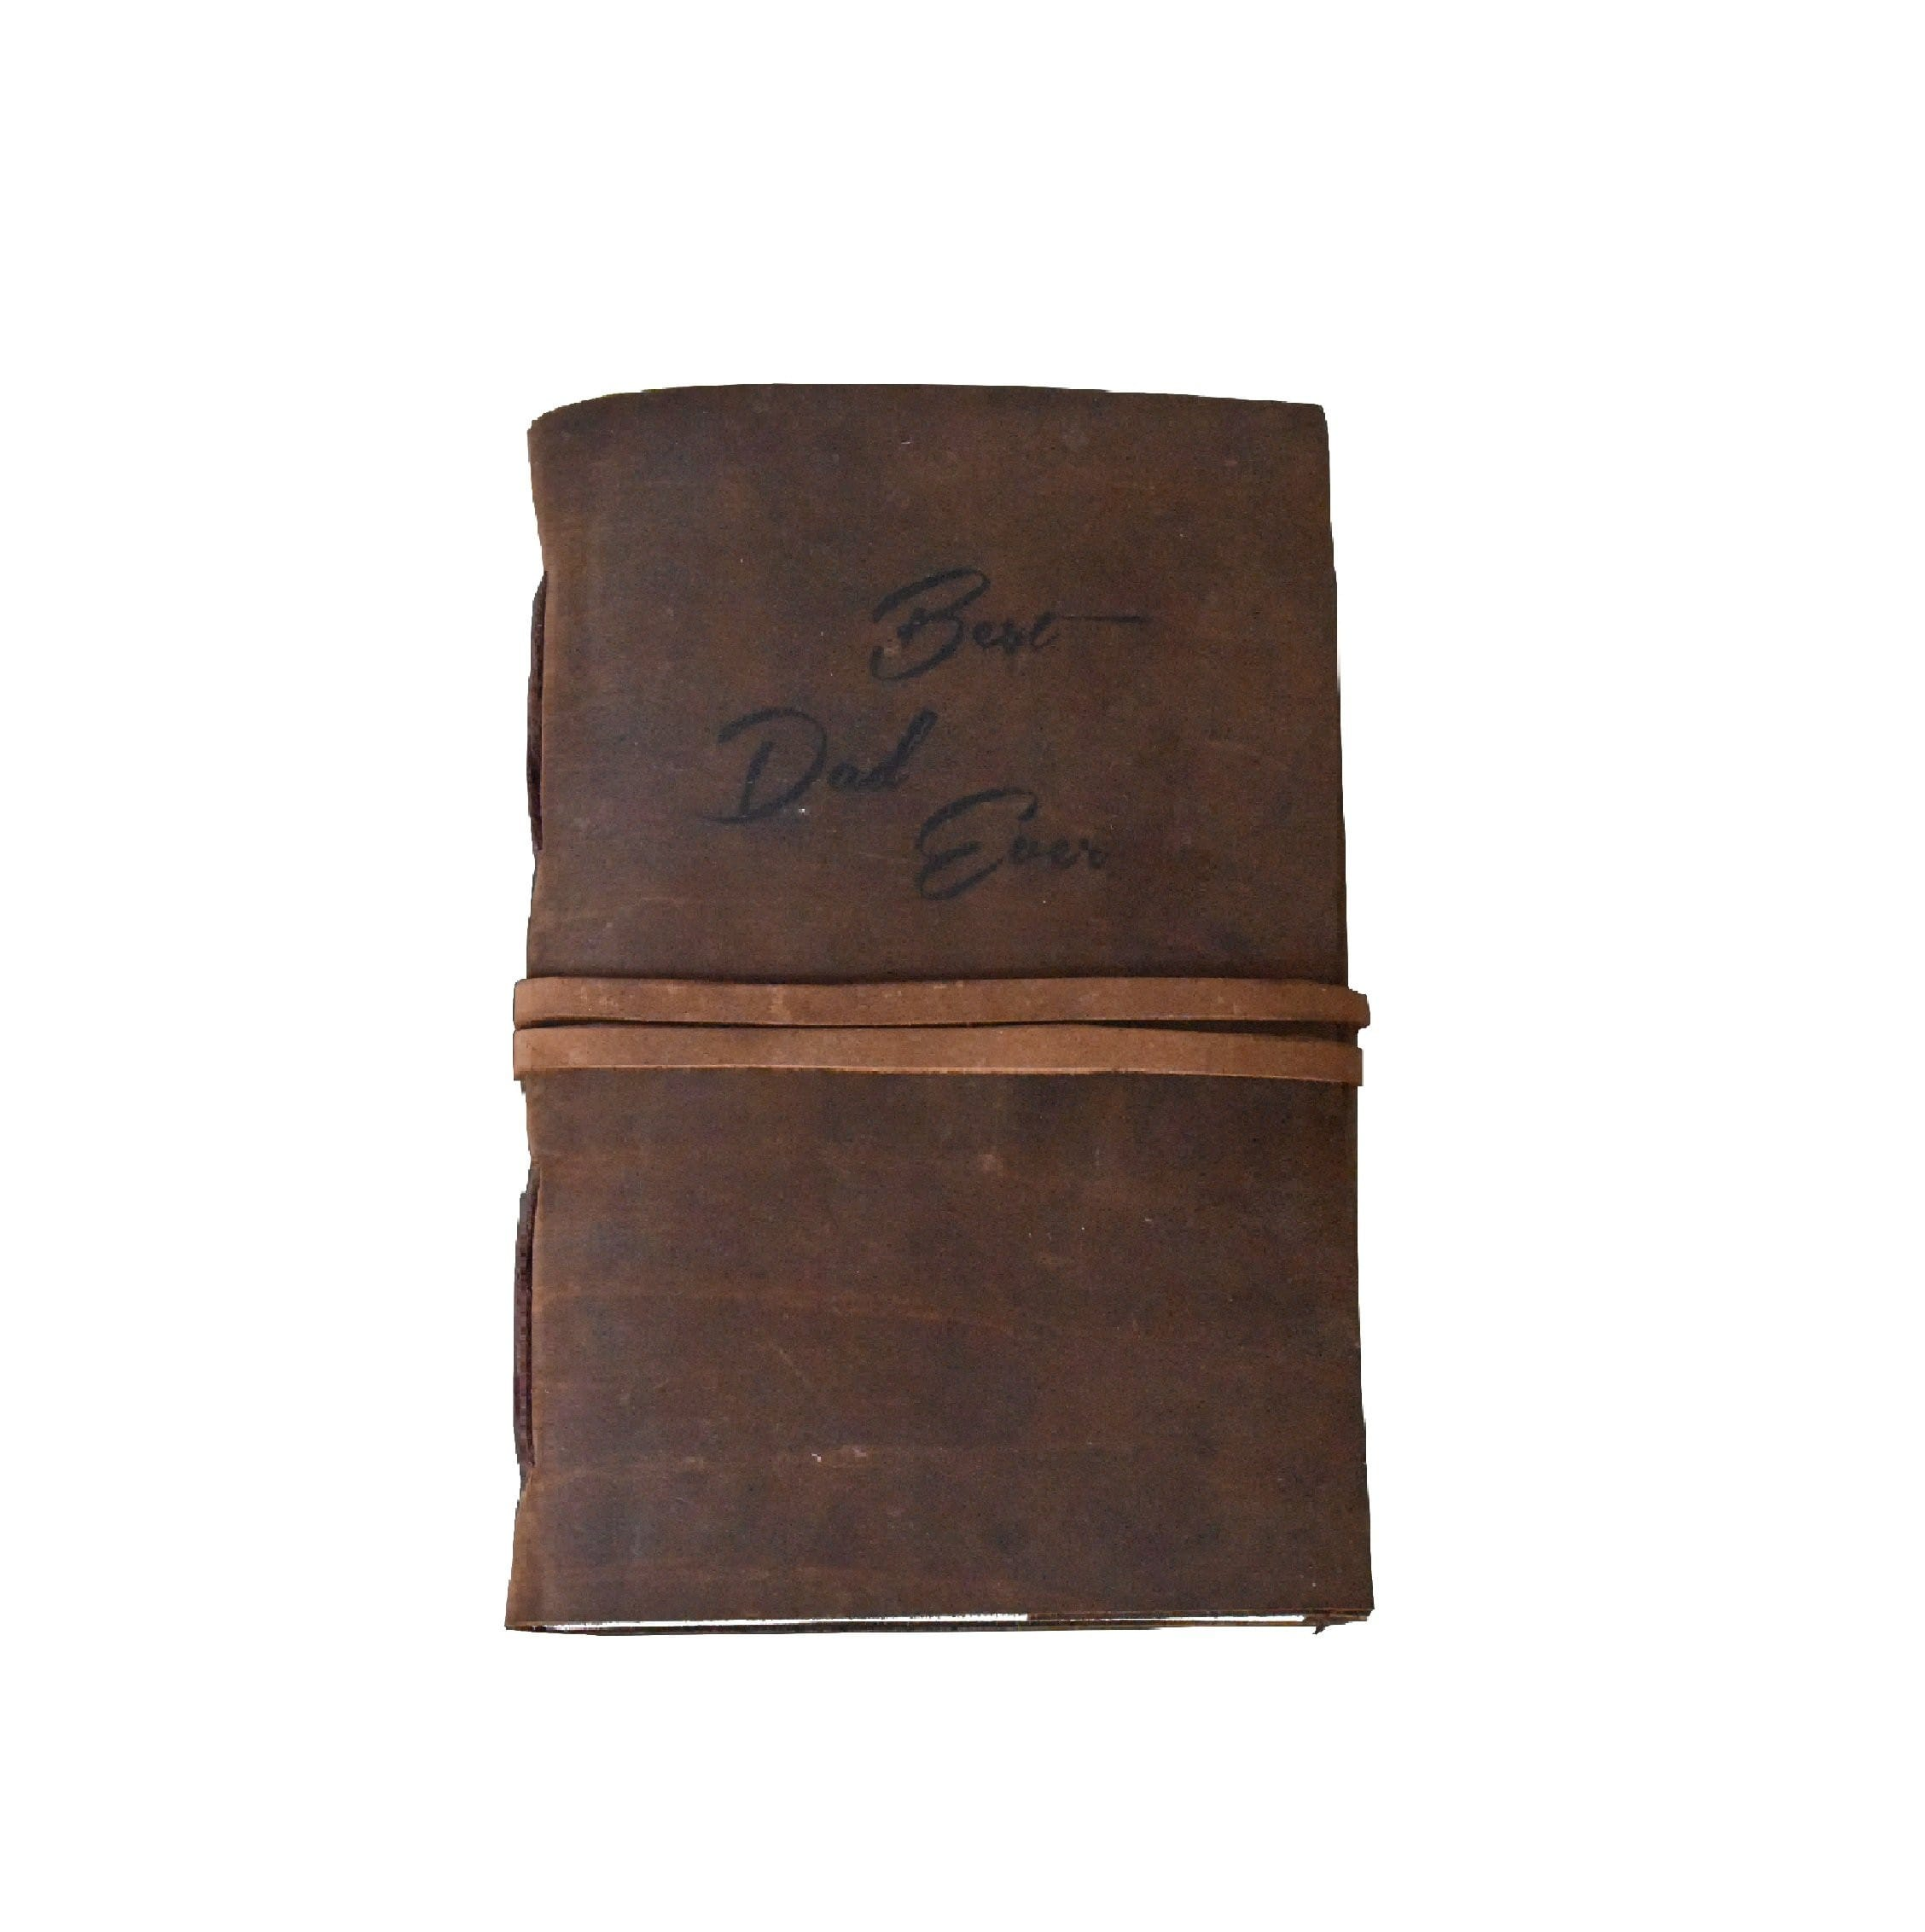 Best DAD Ever Personalise Leather Journal - BohoEntice